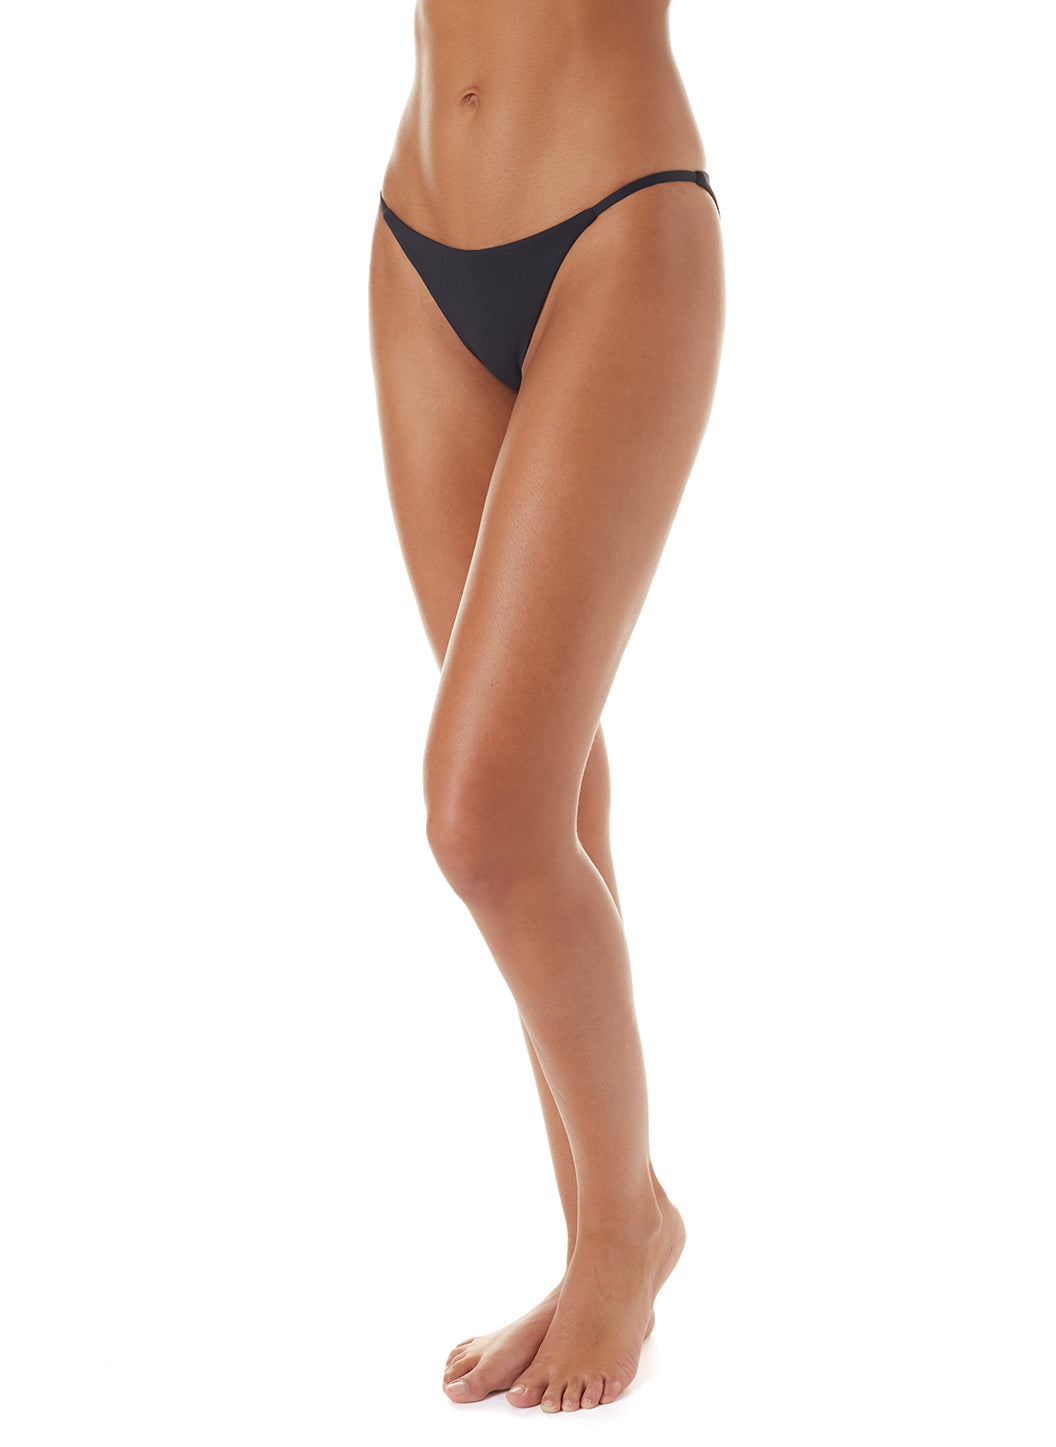 Exclusive St Tropez Black High-Leg Bikini Bottom - Melissa Odabash Bikini Bottoms